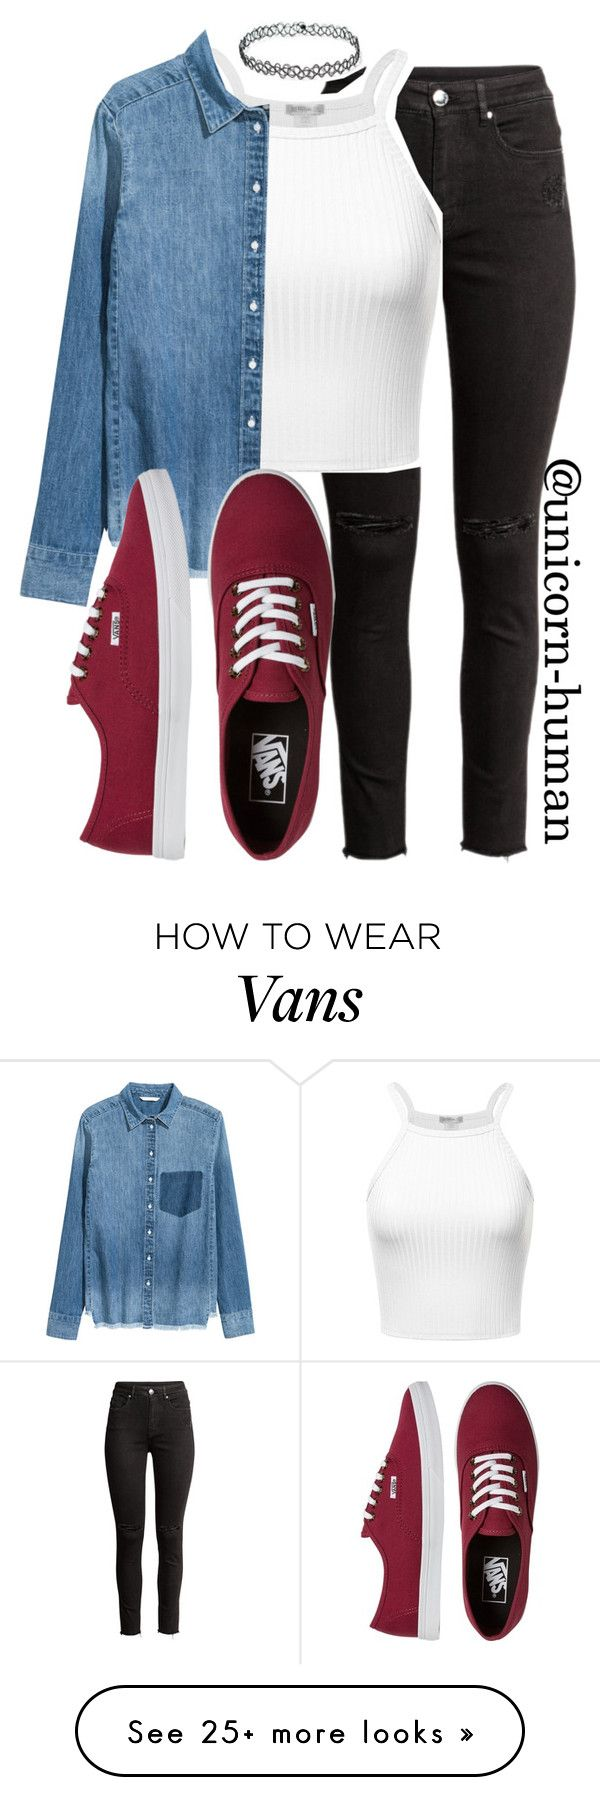 Girls Outfits With Vans | www.imgkid.com - The Image Kid Has It!